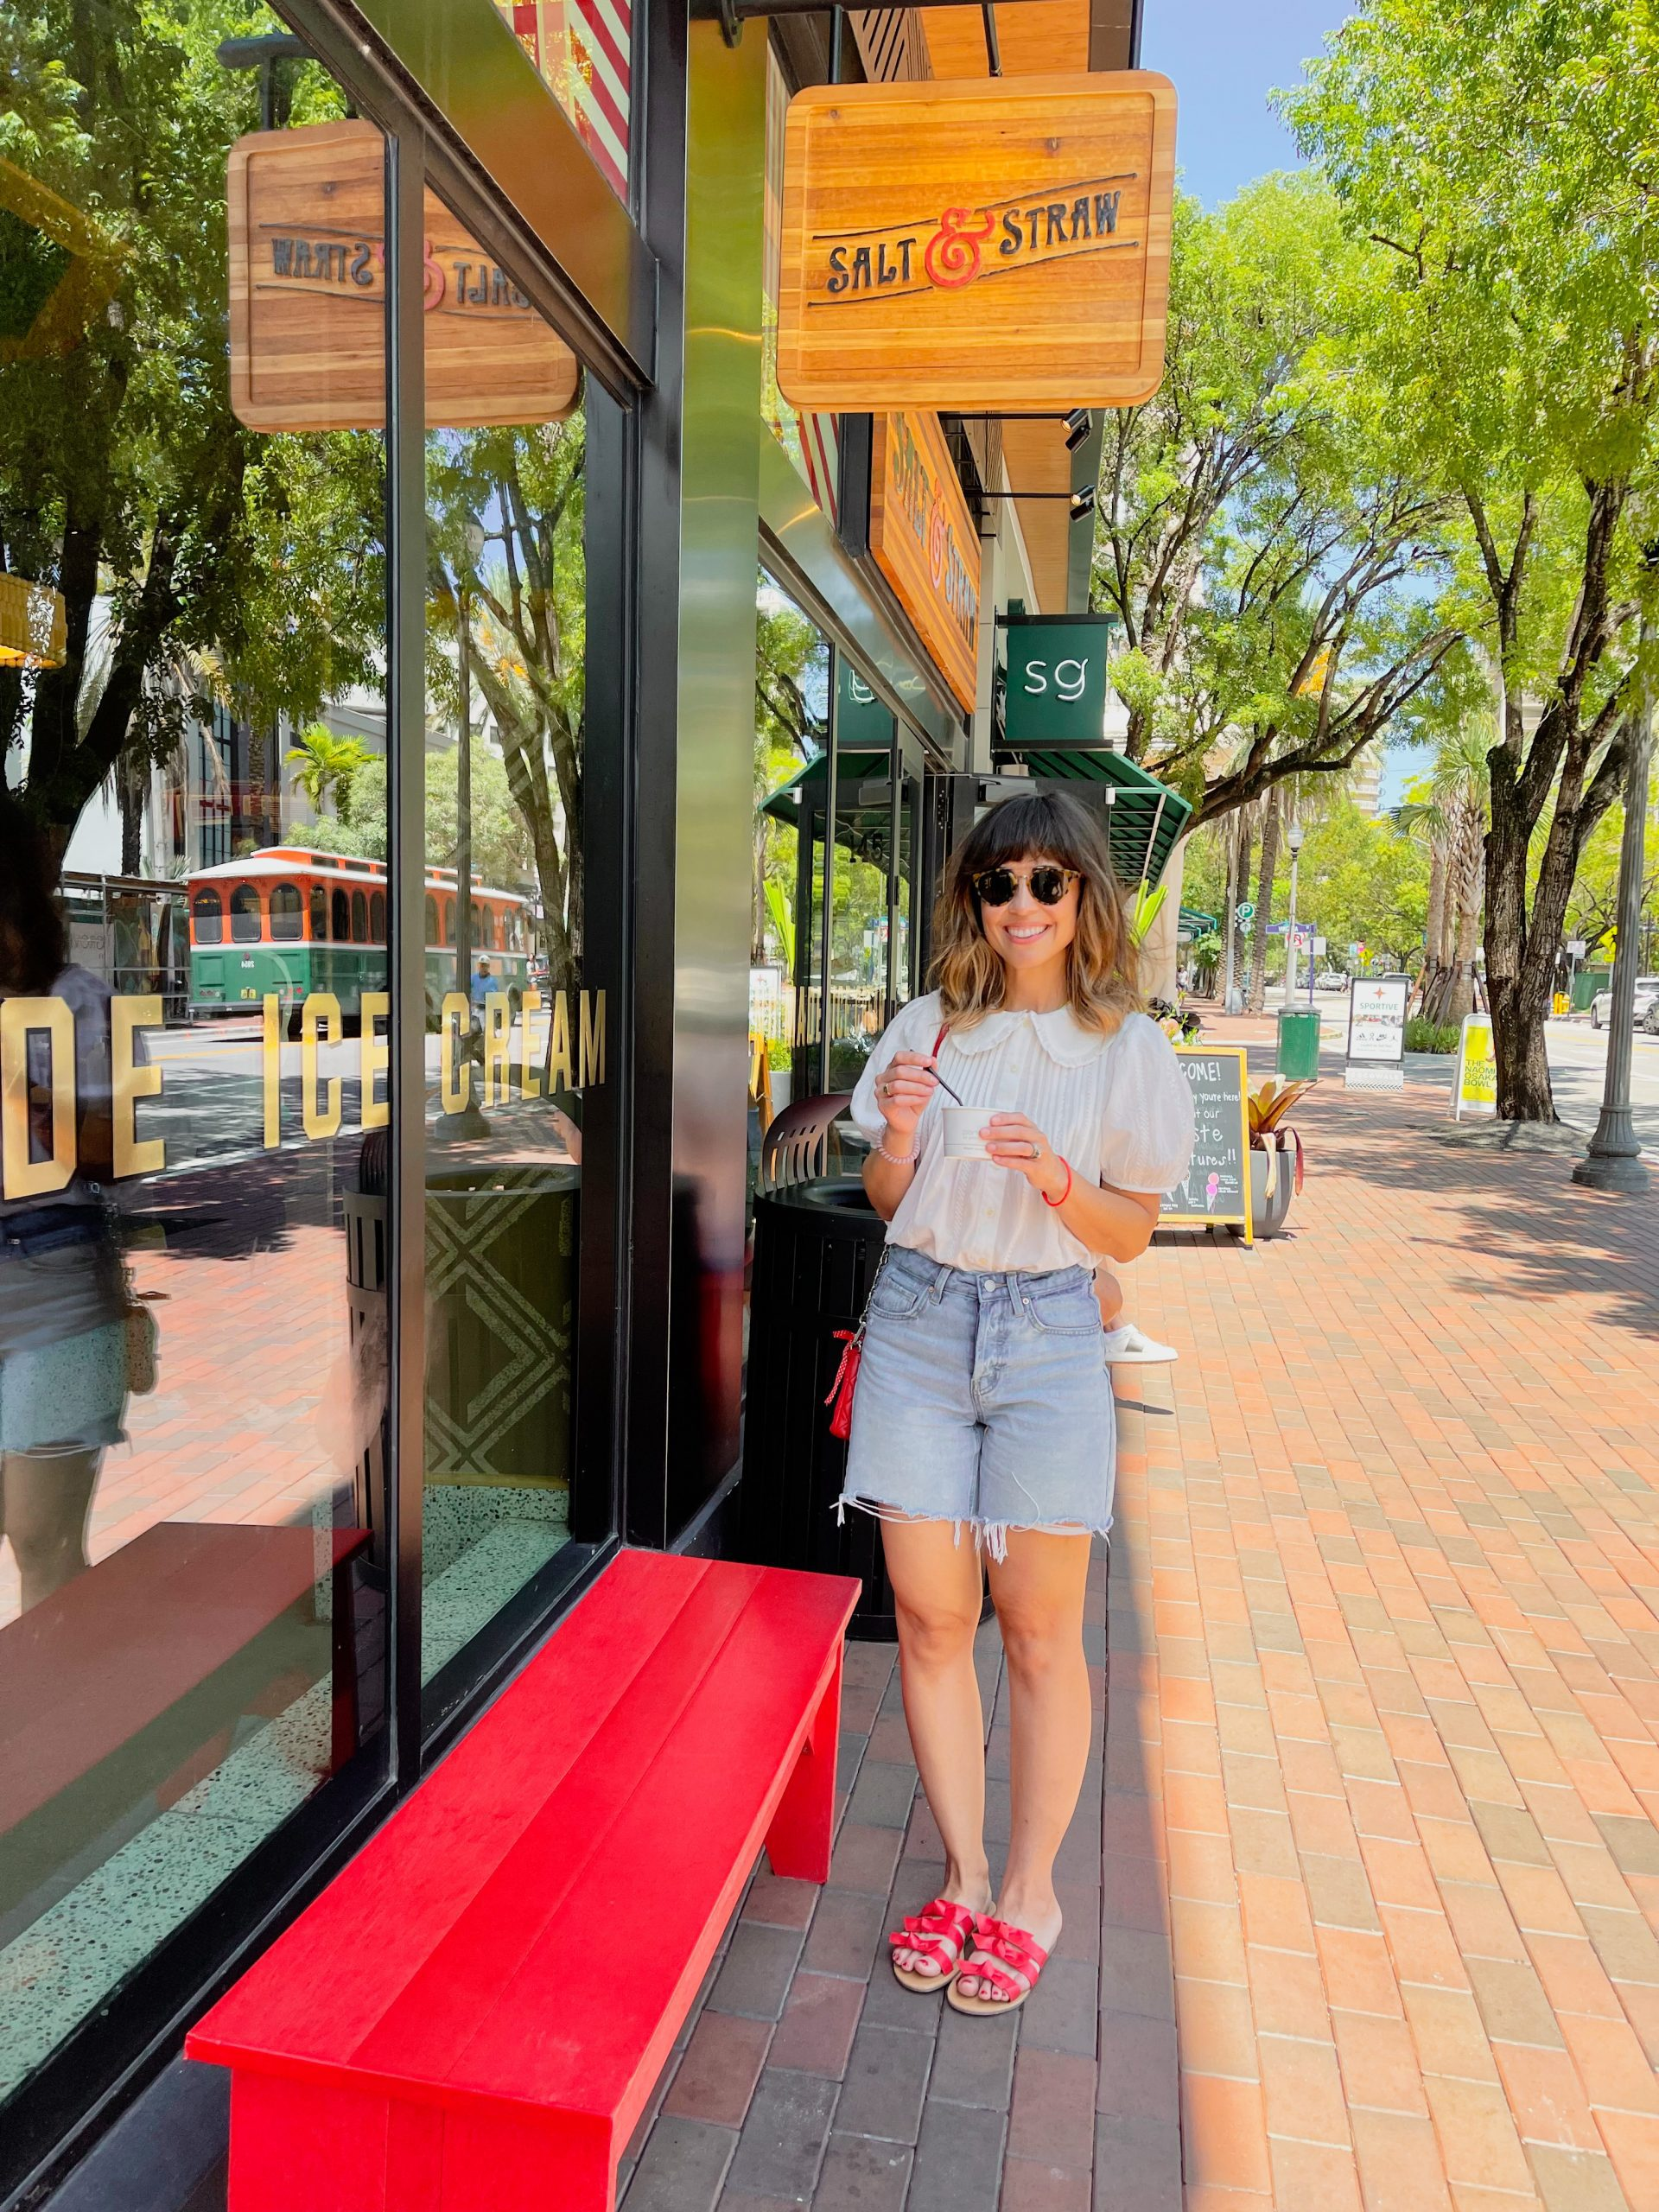 Best Ice Cream Shops in Miami to Help You Satisfy Your Sweet Tooth Miami Mom Collective Salt & Straw